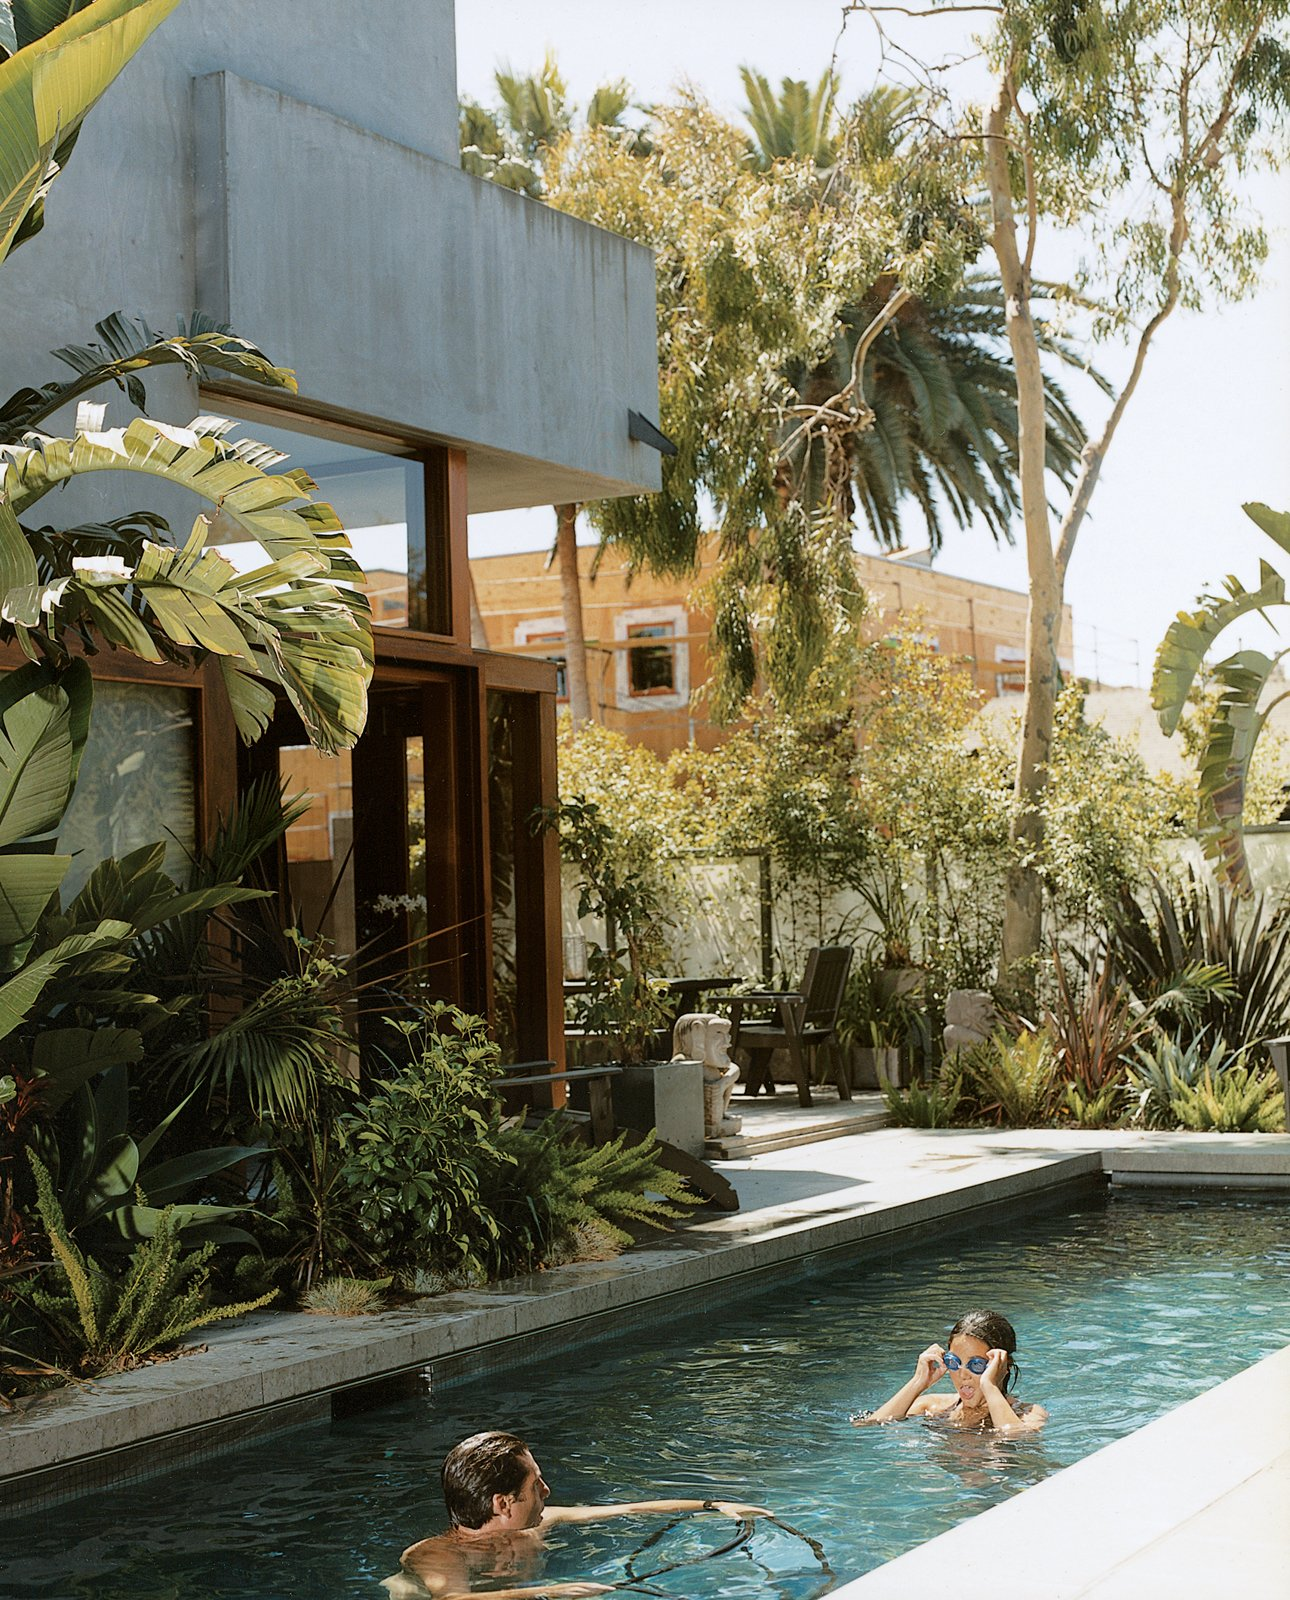 Outdoor and Small Pools, Tubs, Shower Sophie and Colin enjoy their new pool, the only non-solar-powered portion of their home in Venice, California, created by their father, architect David Hertz. Read the full article here.  Photo 4 of 6 in Sustainability in Stages